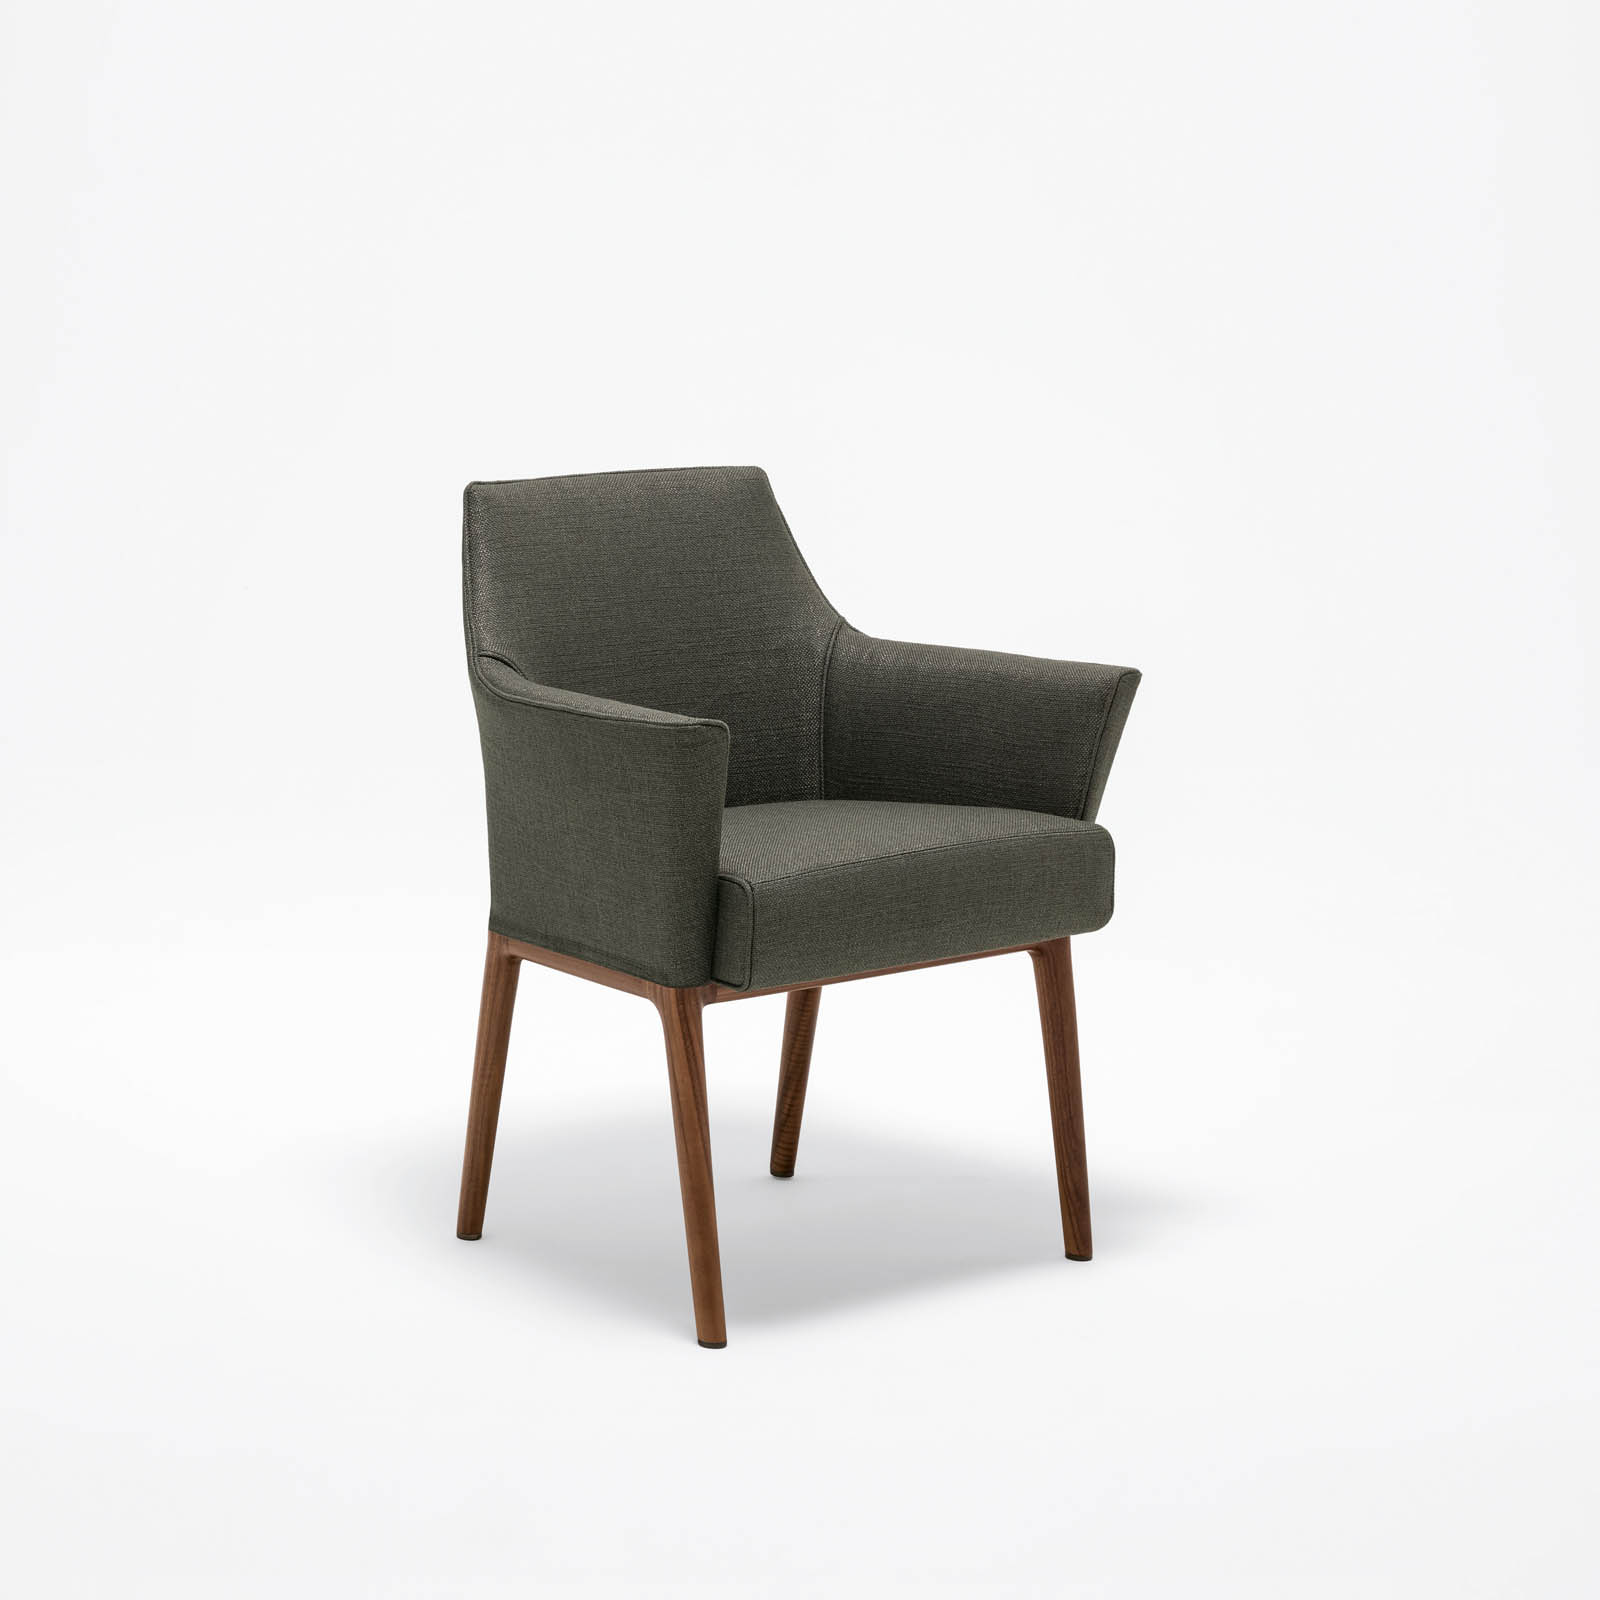 Awesome giorgetti atelier britselei antwerpen with for Fauteuils uitverkoop